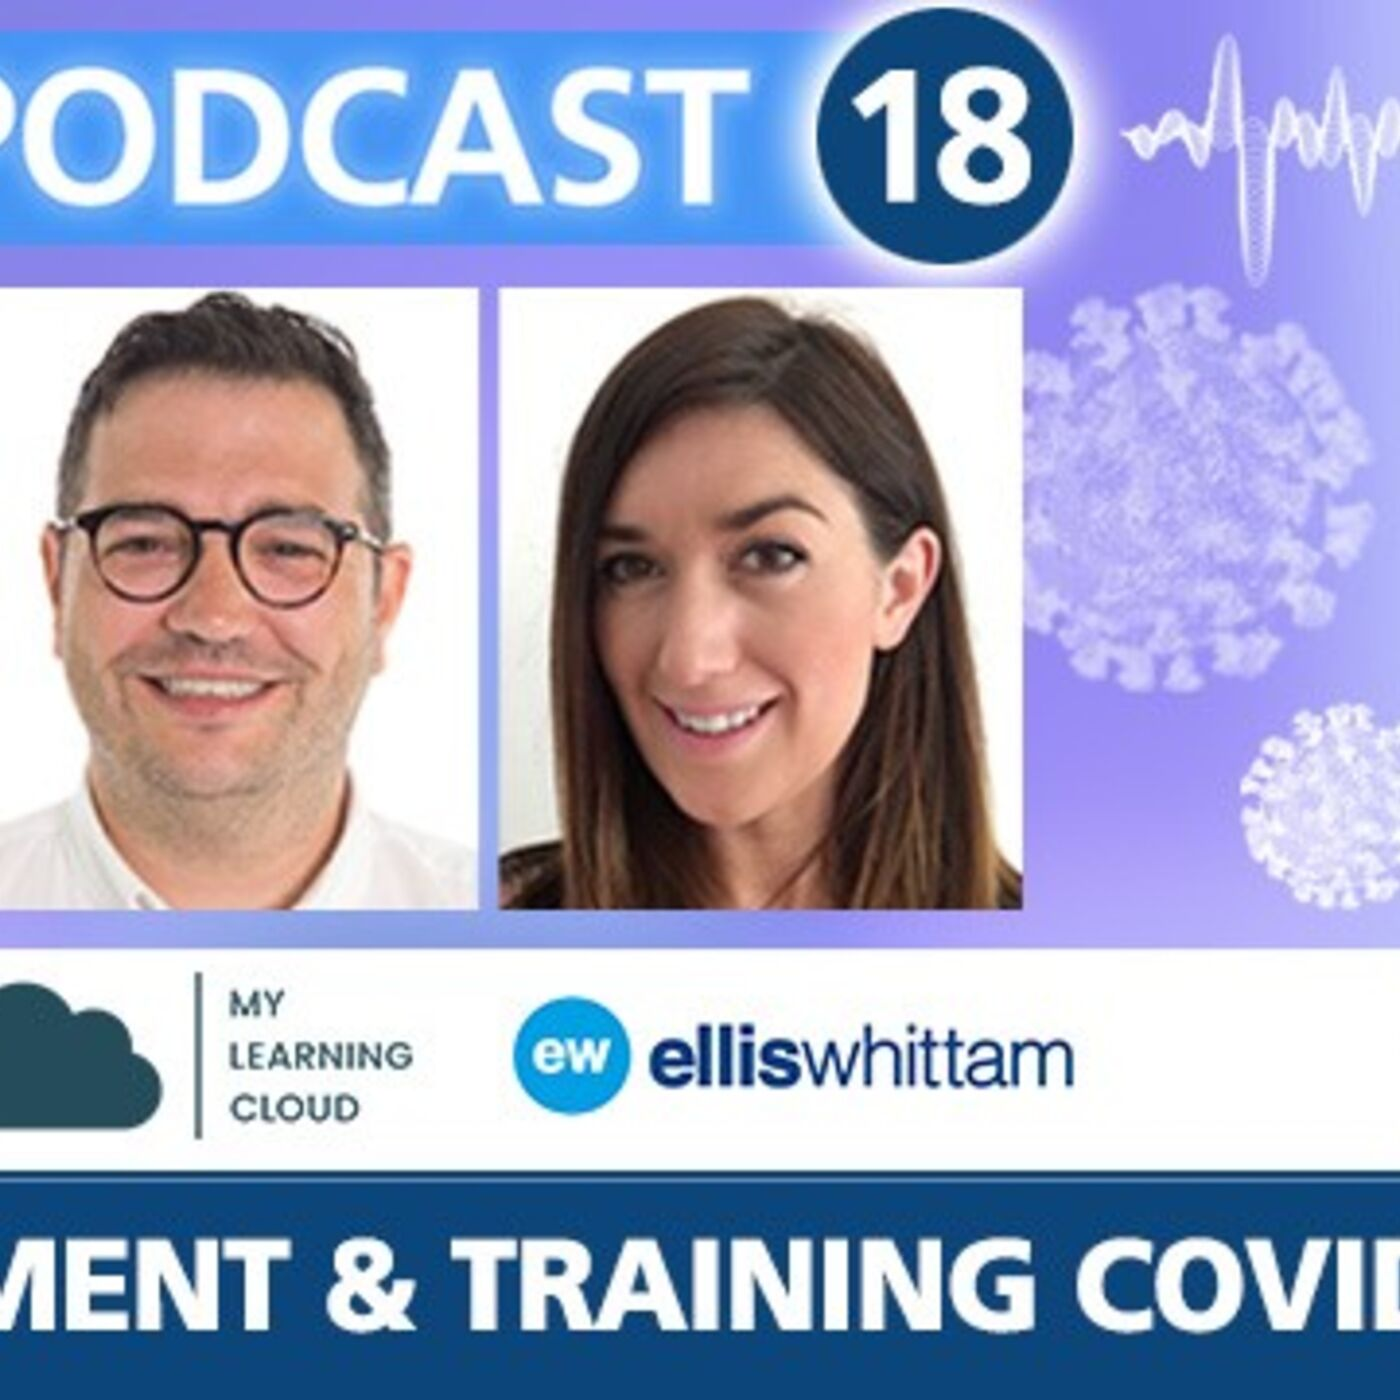 Employment & Training - COVID-19 Special Podcast from Care Home Management